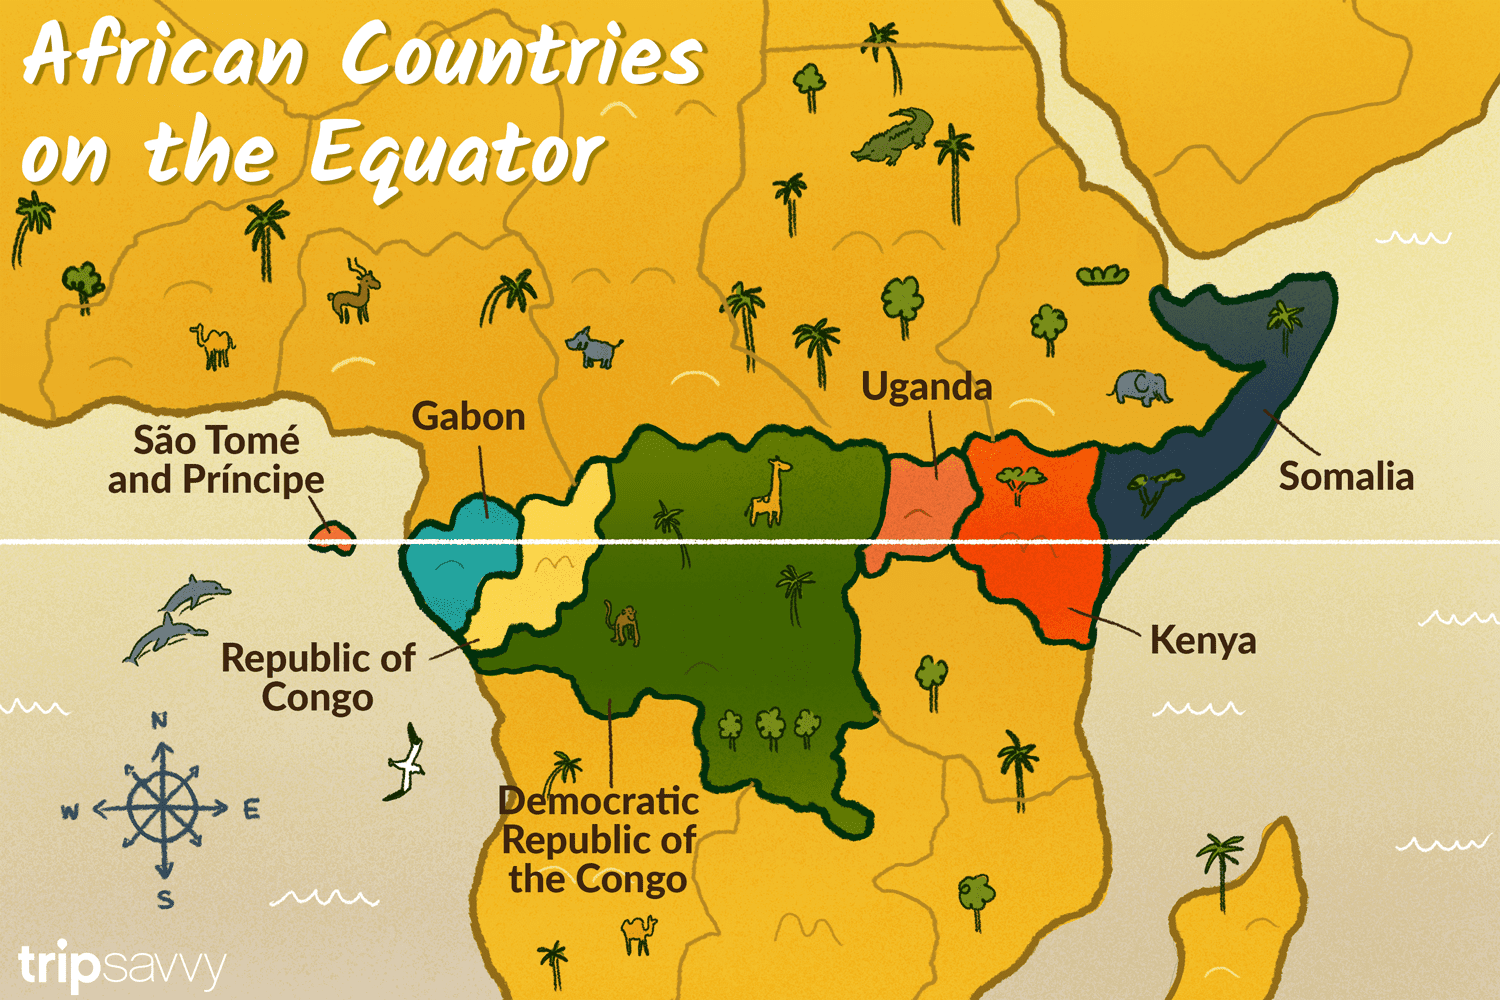 Which African Countries Are Located on the Equator? on african industries map, yemen map, north america, south america, nigeria map, african borders map, canada map, african world map, france map, african landforms map, african people map, egypt map, european map, african provinces map, african governments map, new zealand map, australia map, middle eastern map, african flags map, middle east, united states of america, europe map, sahara desert map, cambodia map,